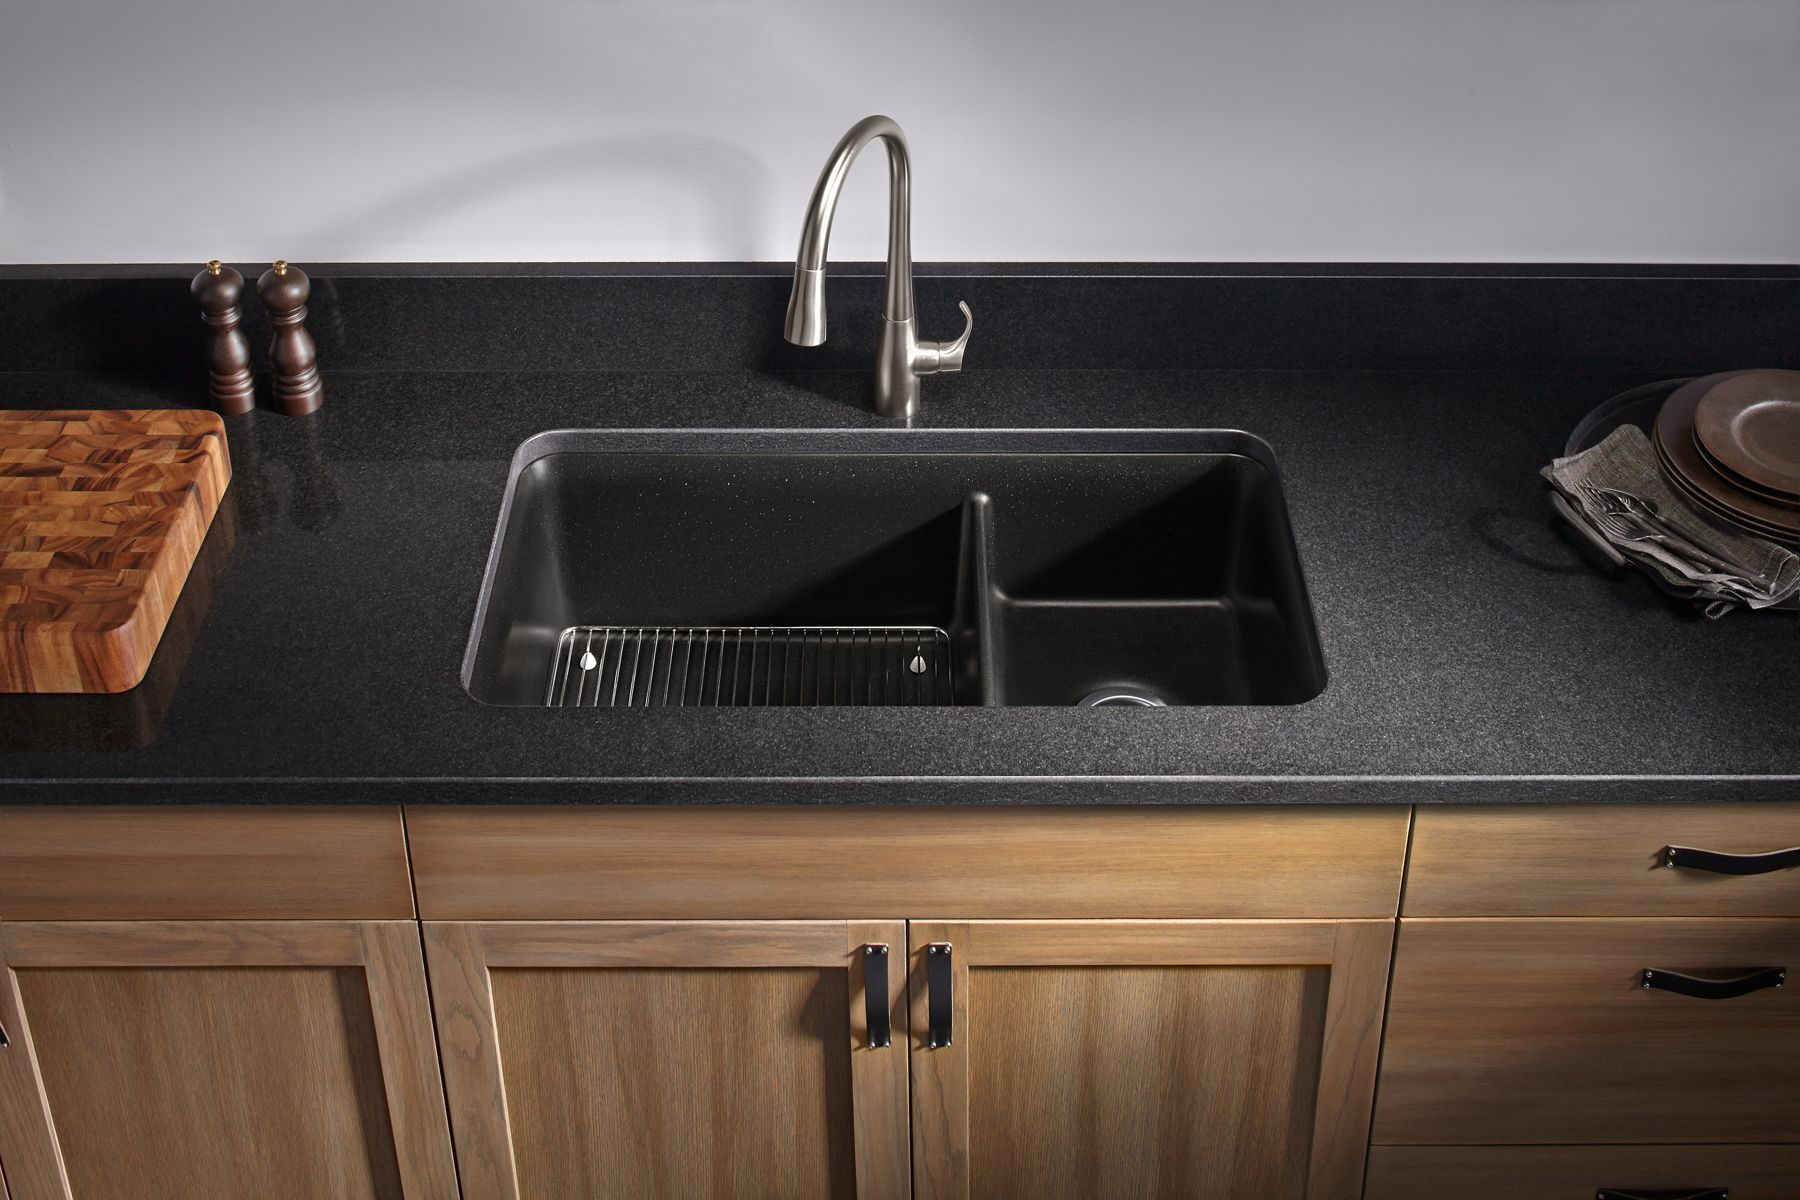 How To Remove Hard Water Stains From Granite Countertops How Do You Clean A Granite Composite Sink How To Clean